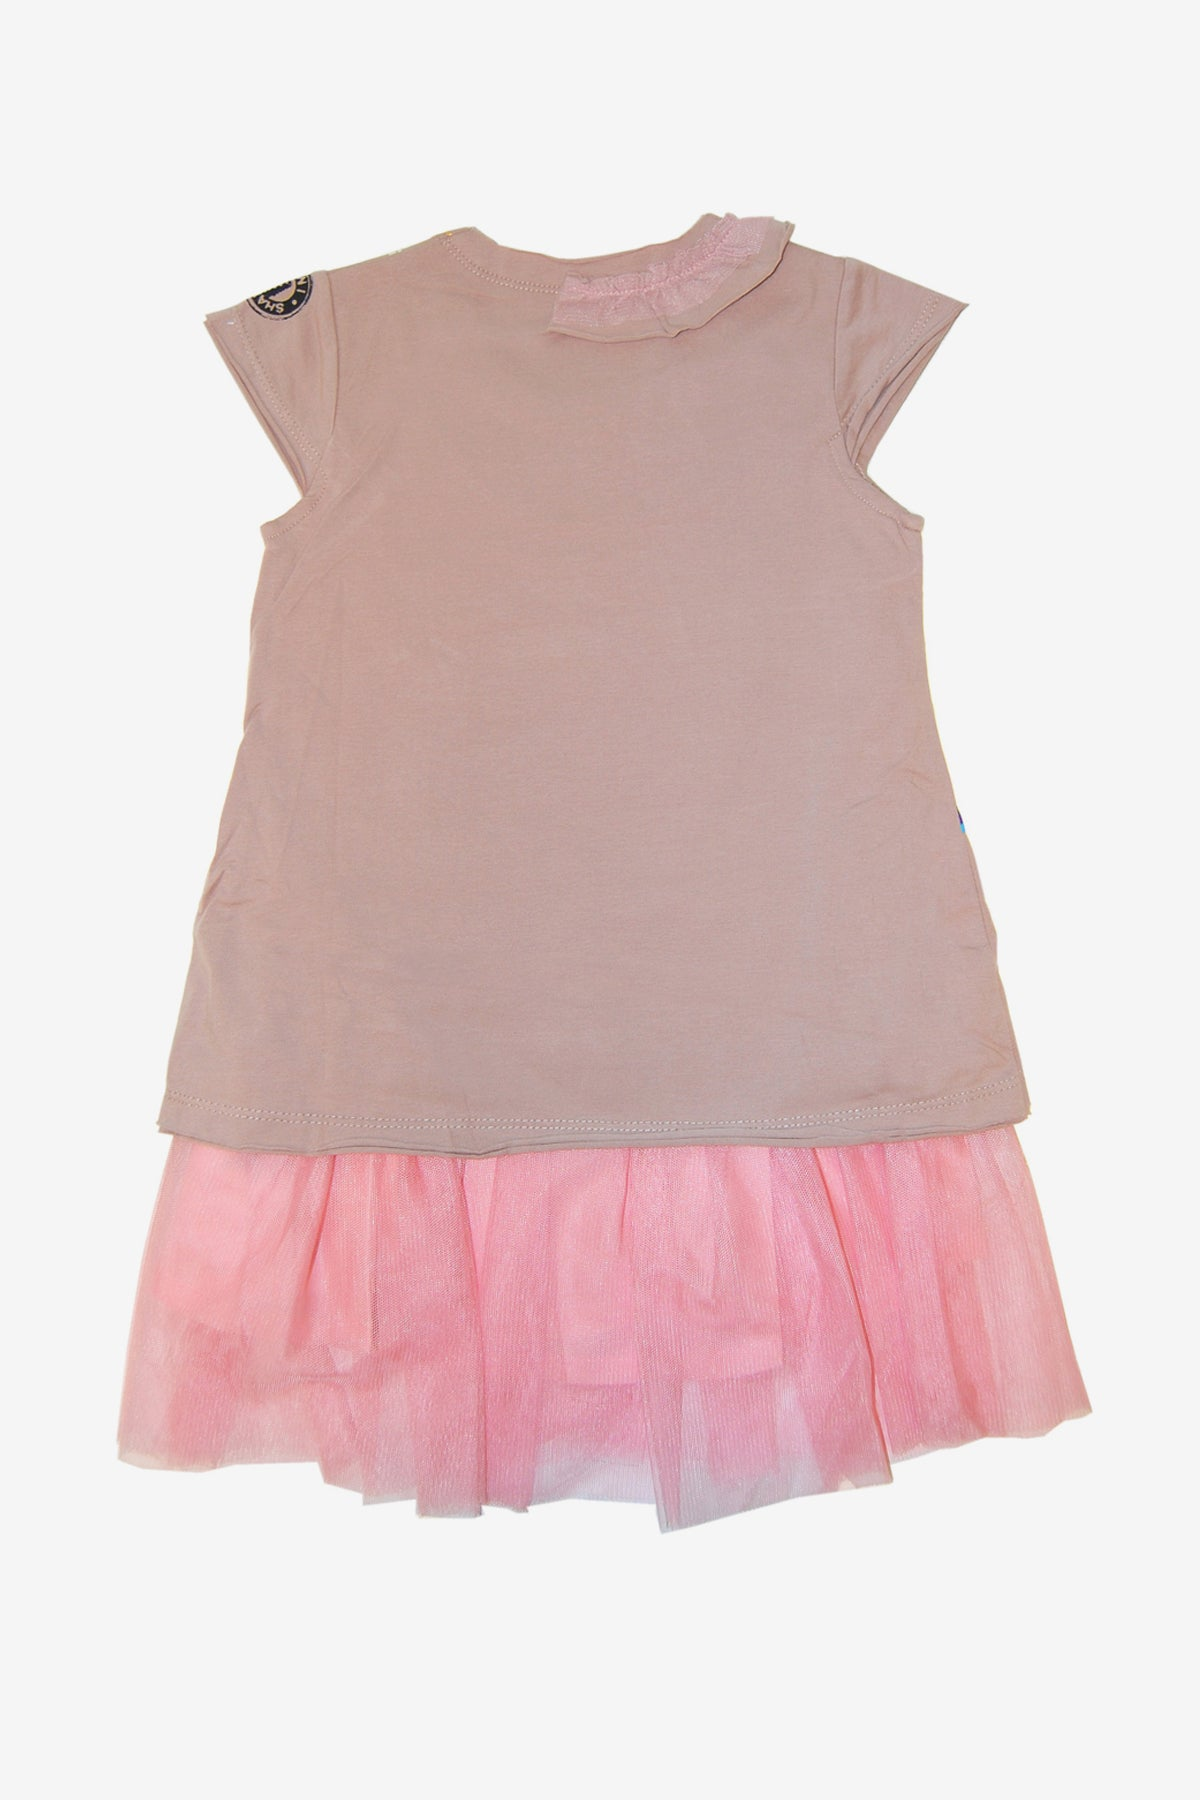 Mini Shatsu Roller Skate Tutu Baby Dress